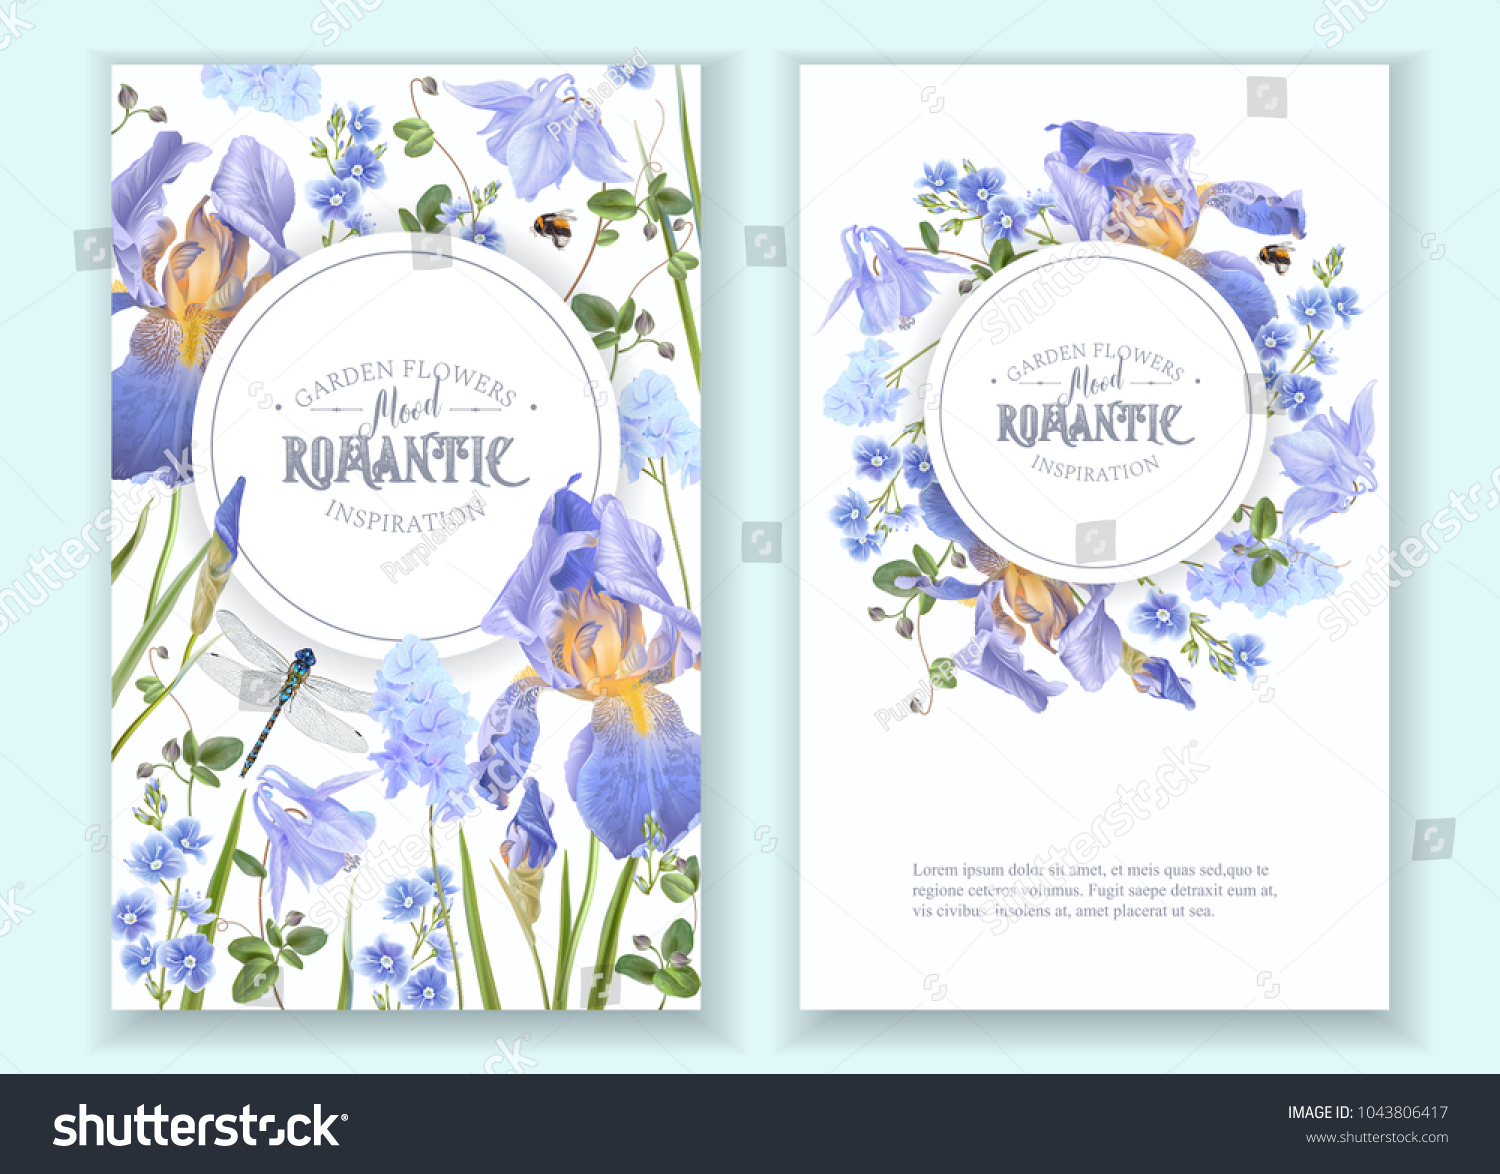 Vector Botanical Banners Blue Flowers Dragonfly Stock Vector ...